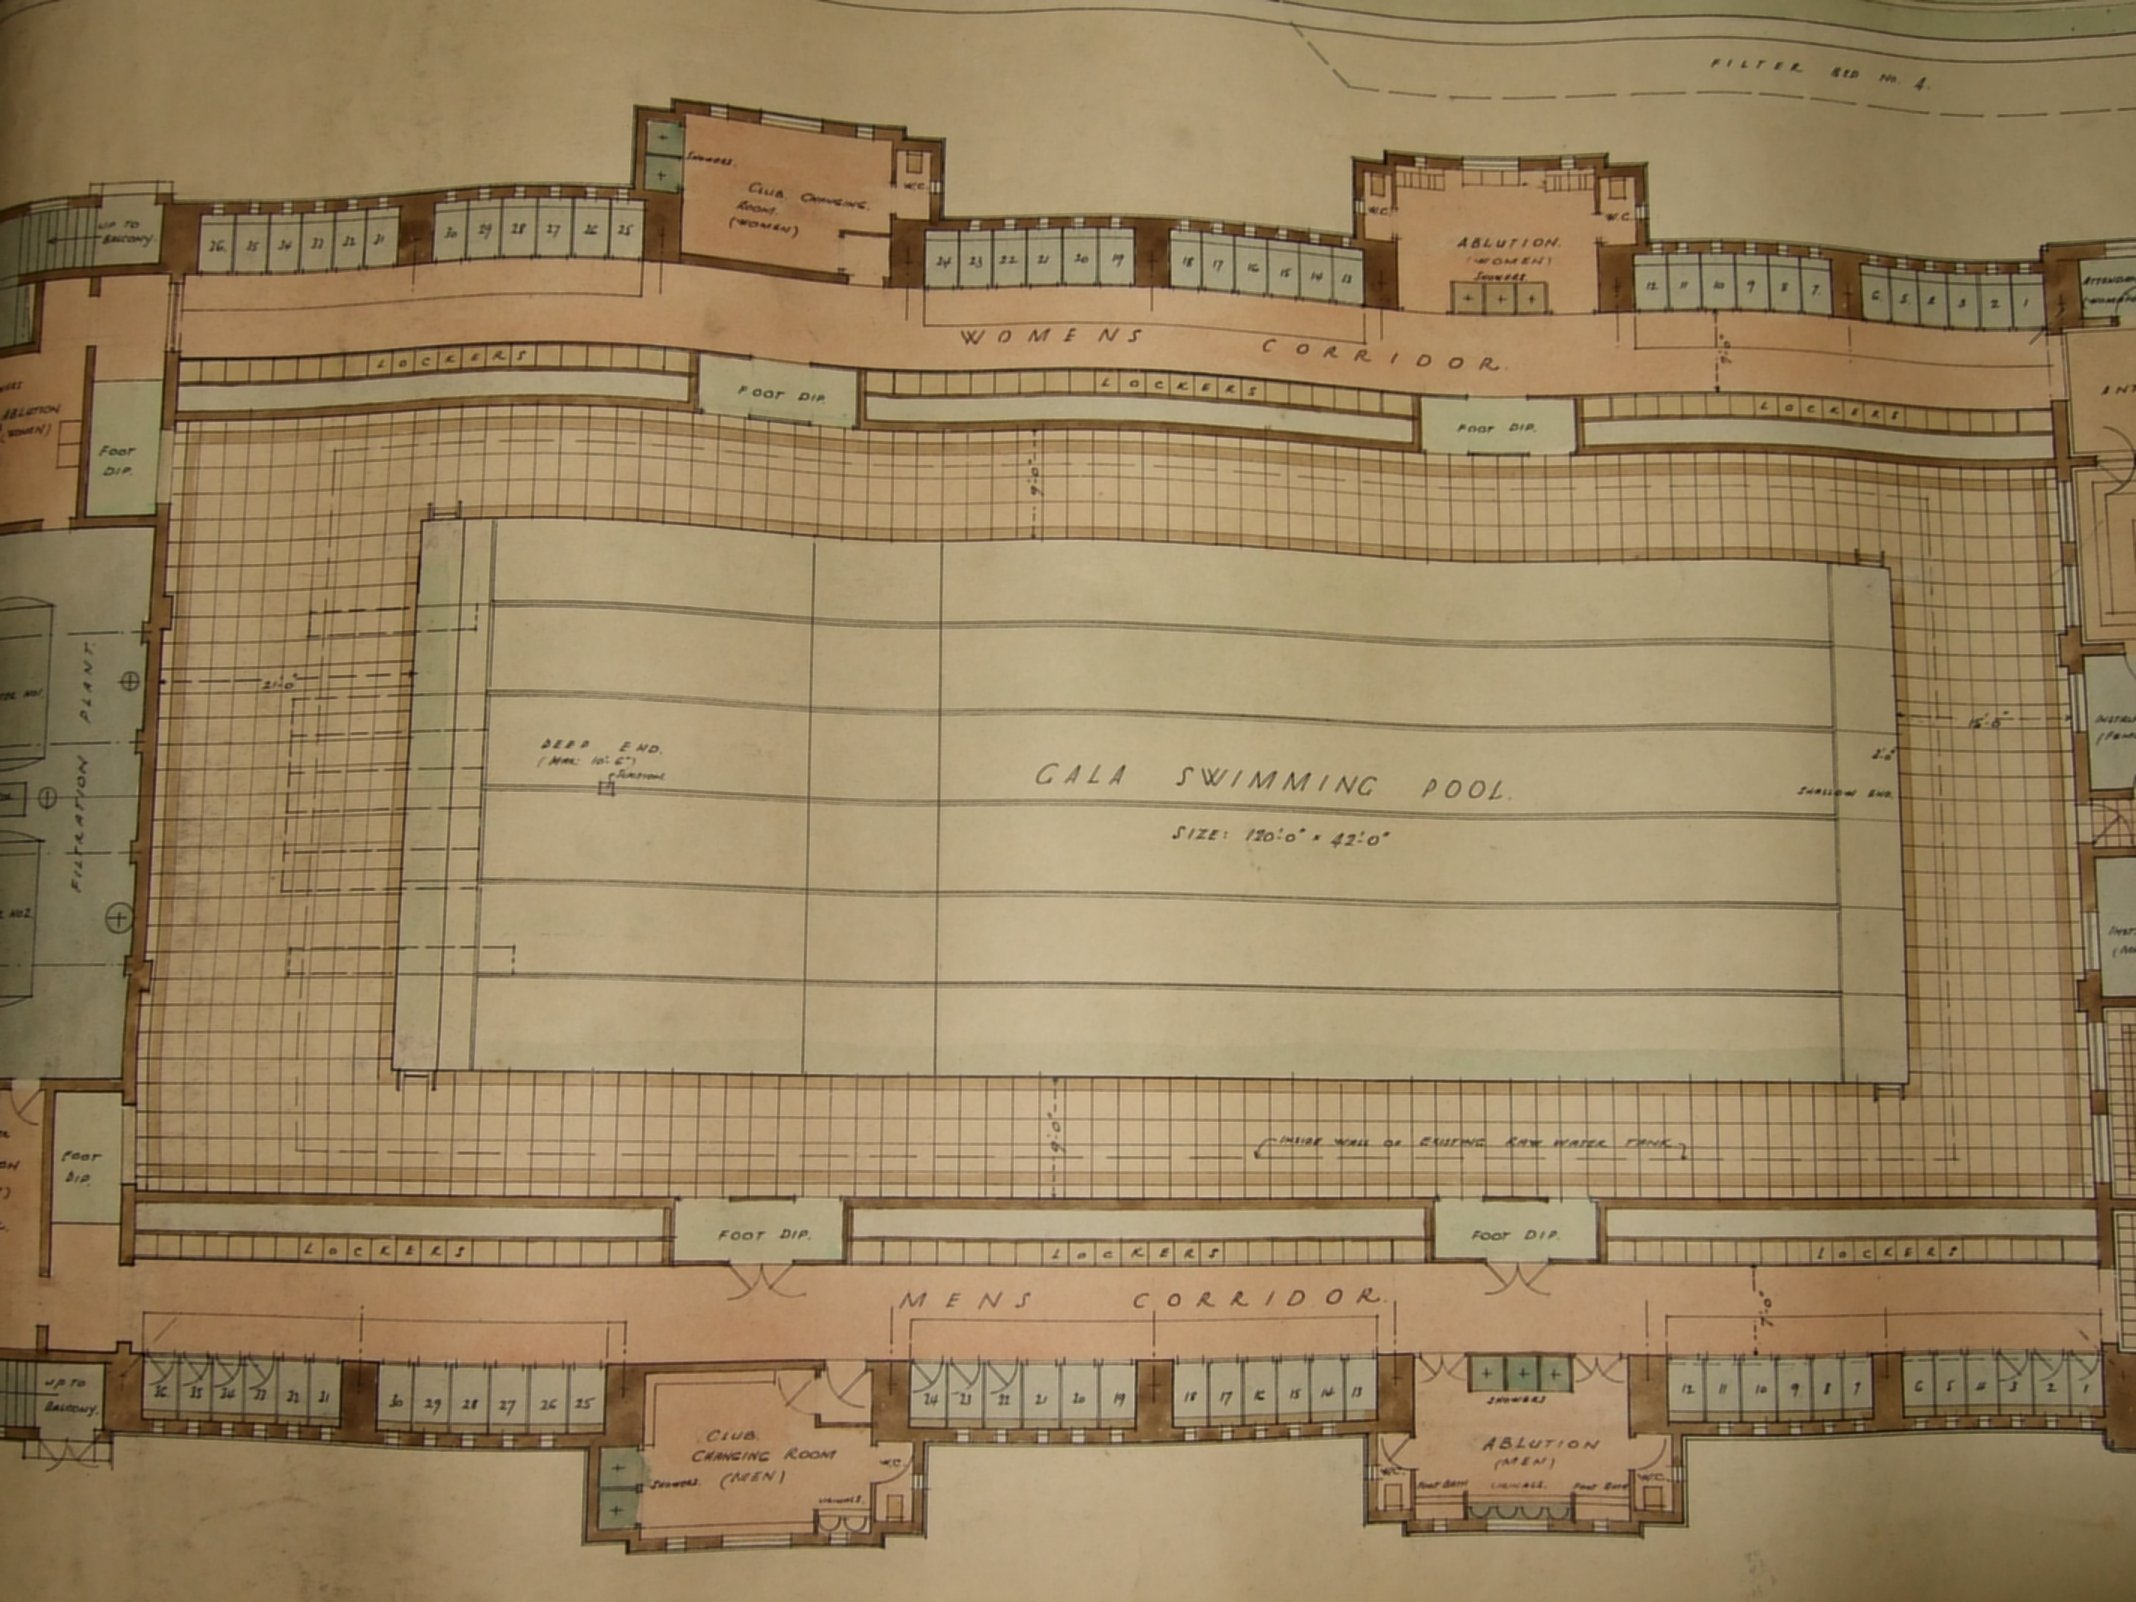 [Proposed Gala Baths, Hinksey Park, plan]